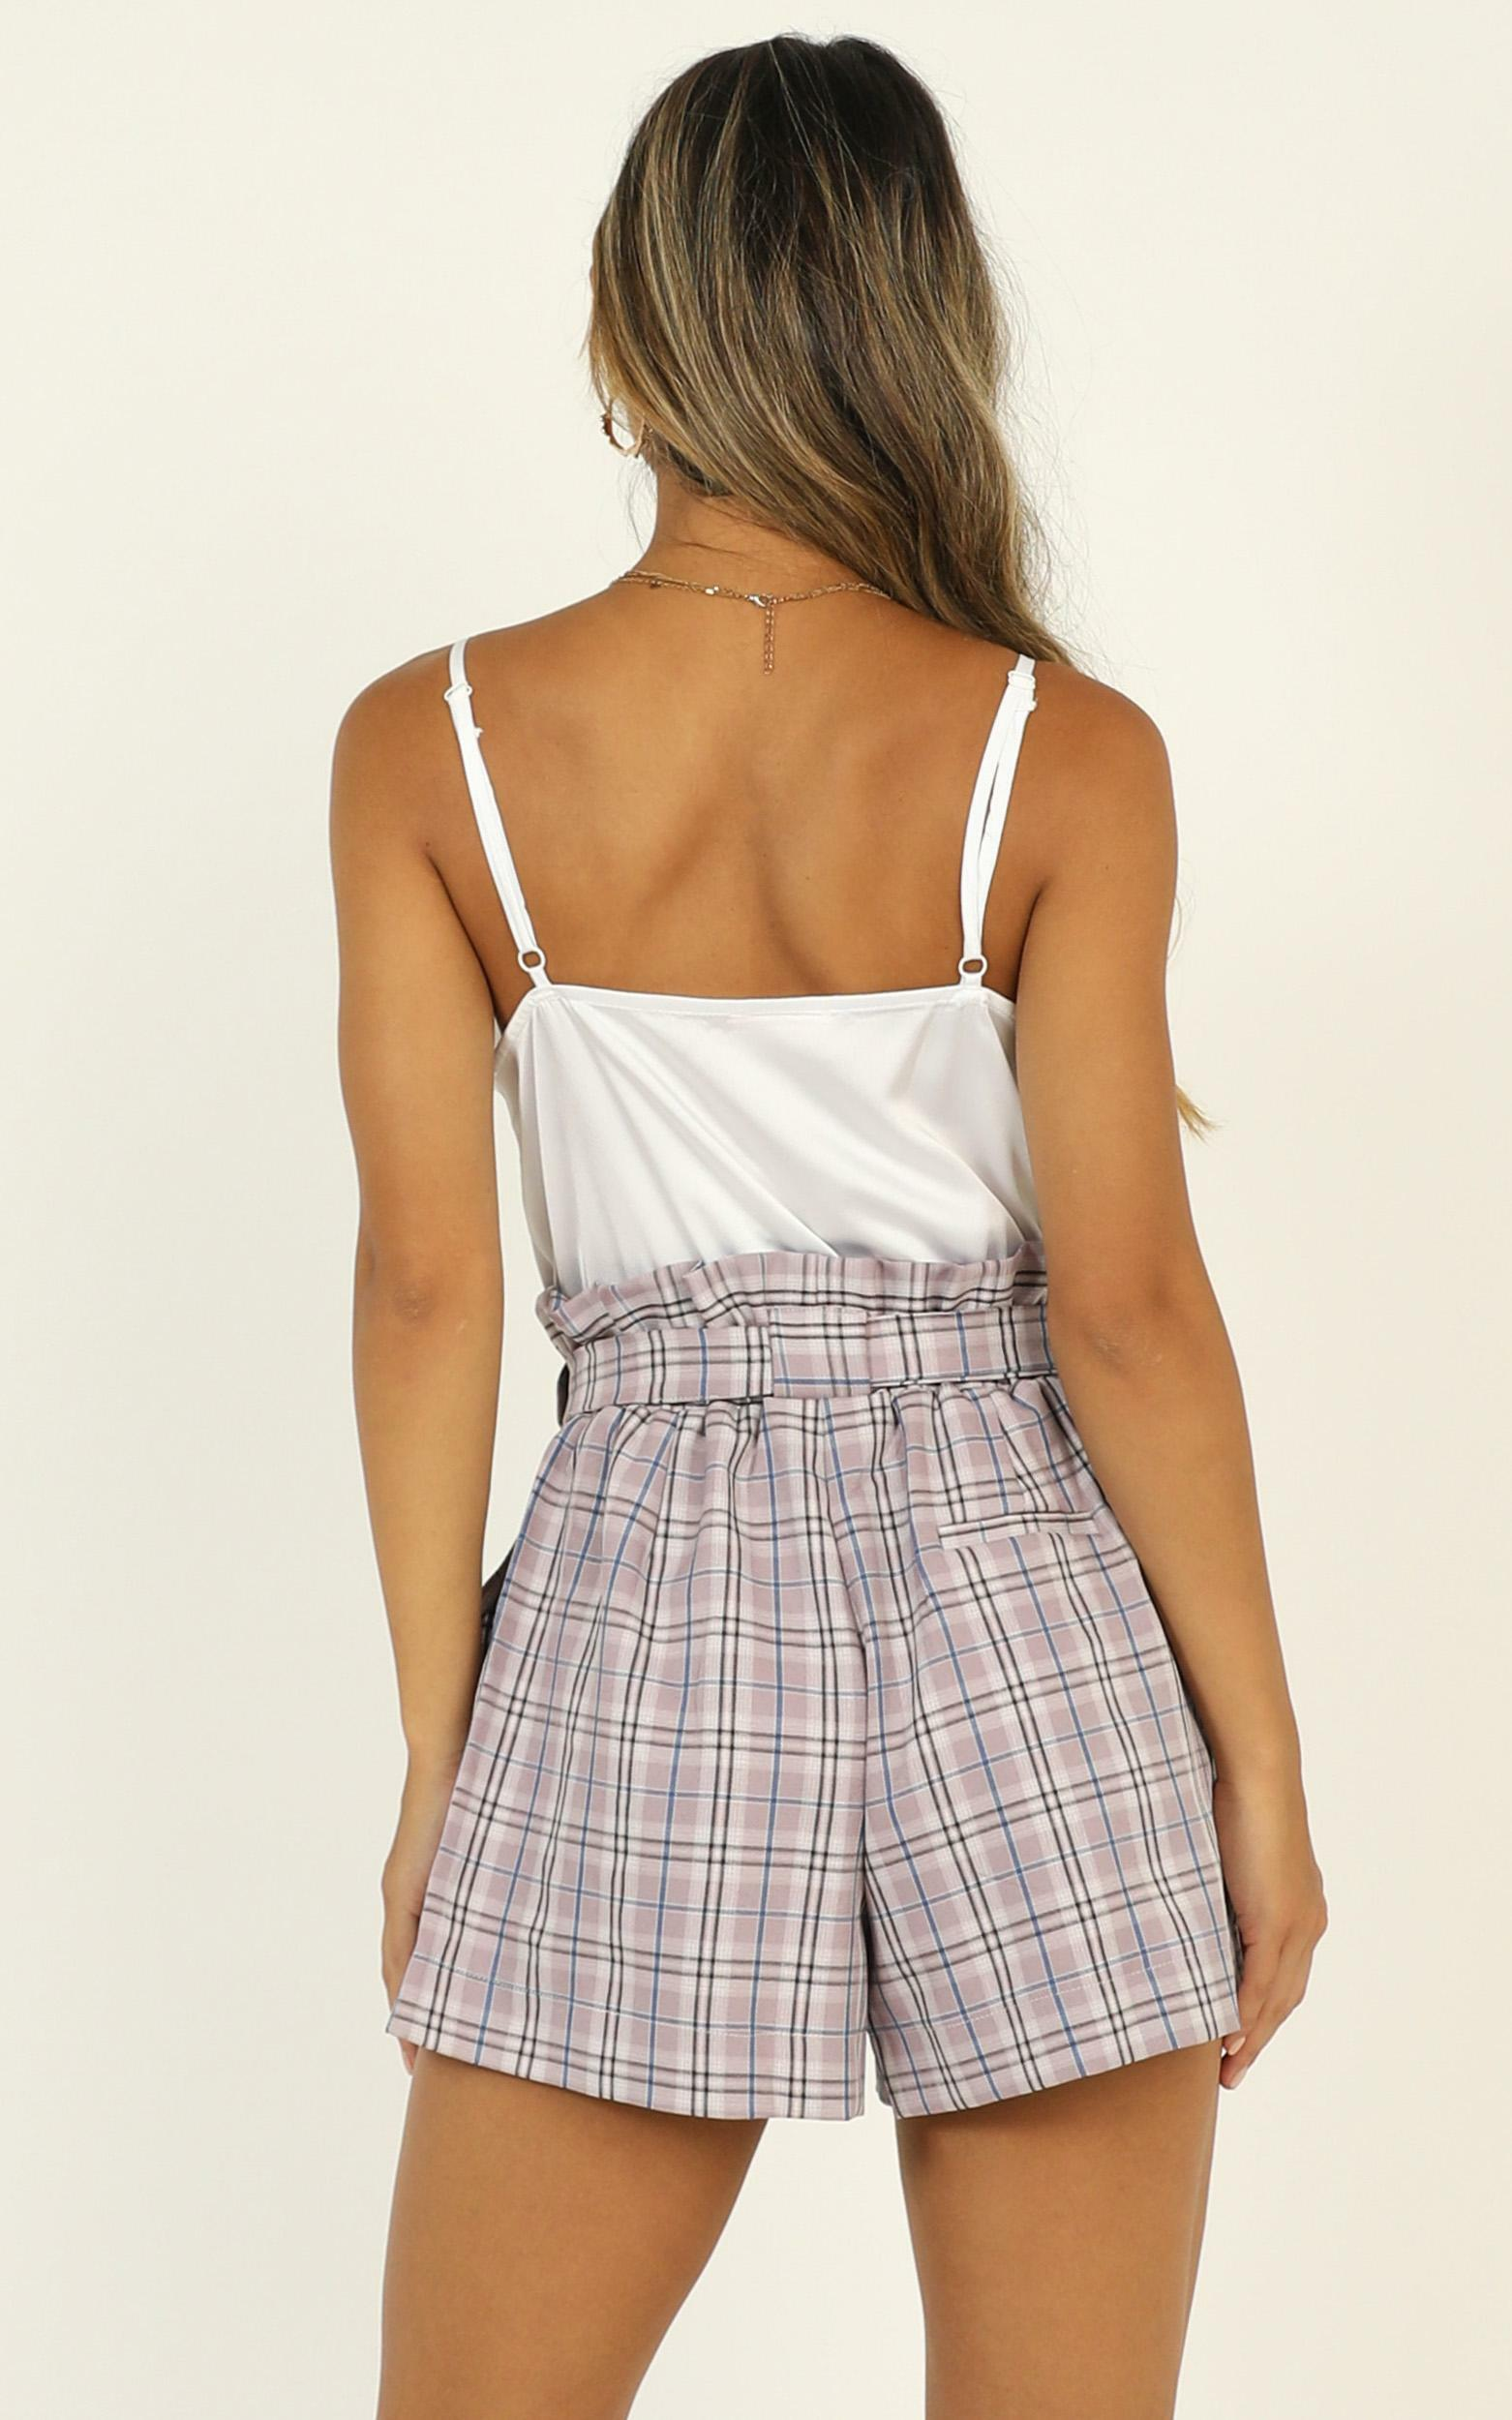 All Rounder Shorts in lilac check - 6 (XS), PRP2, hi-res image number null